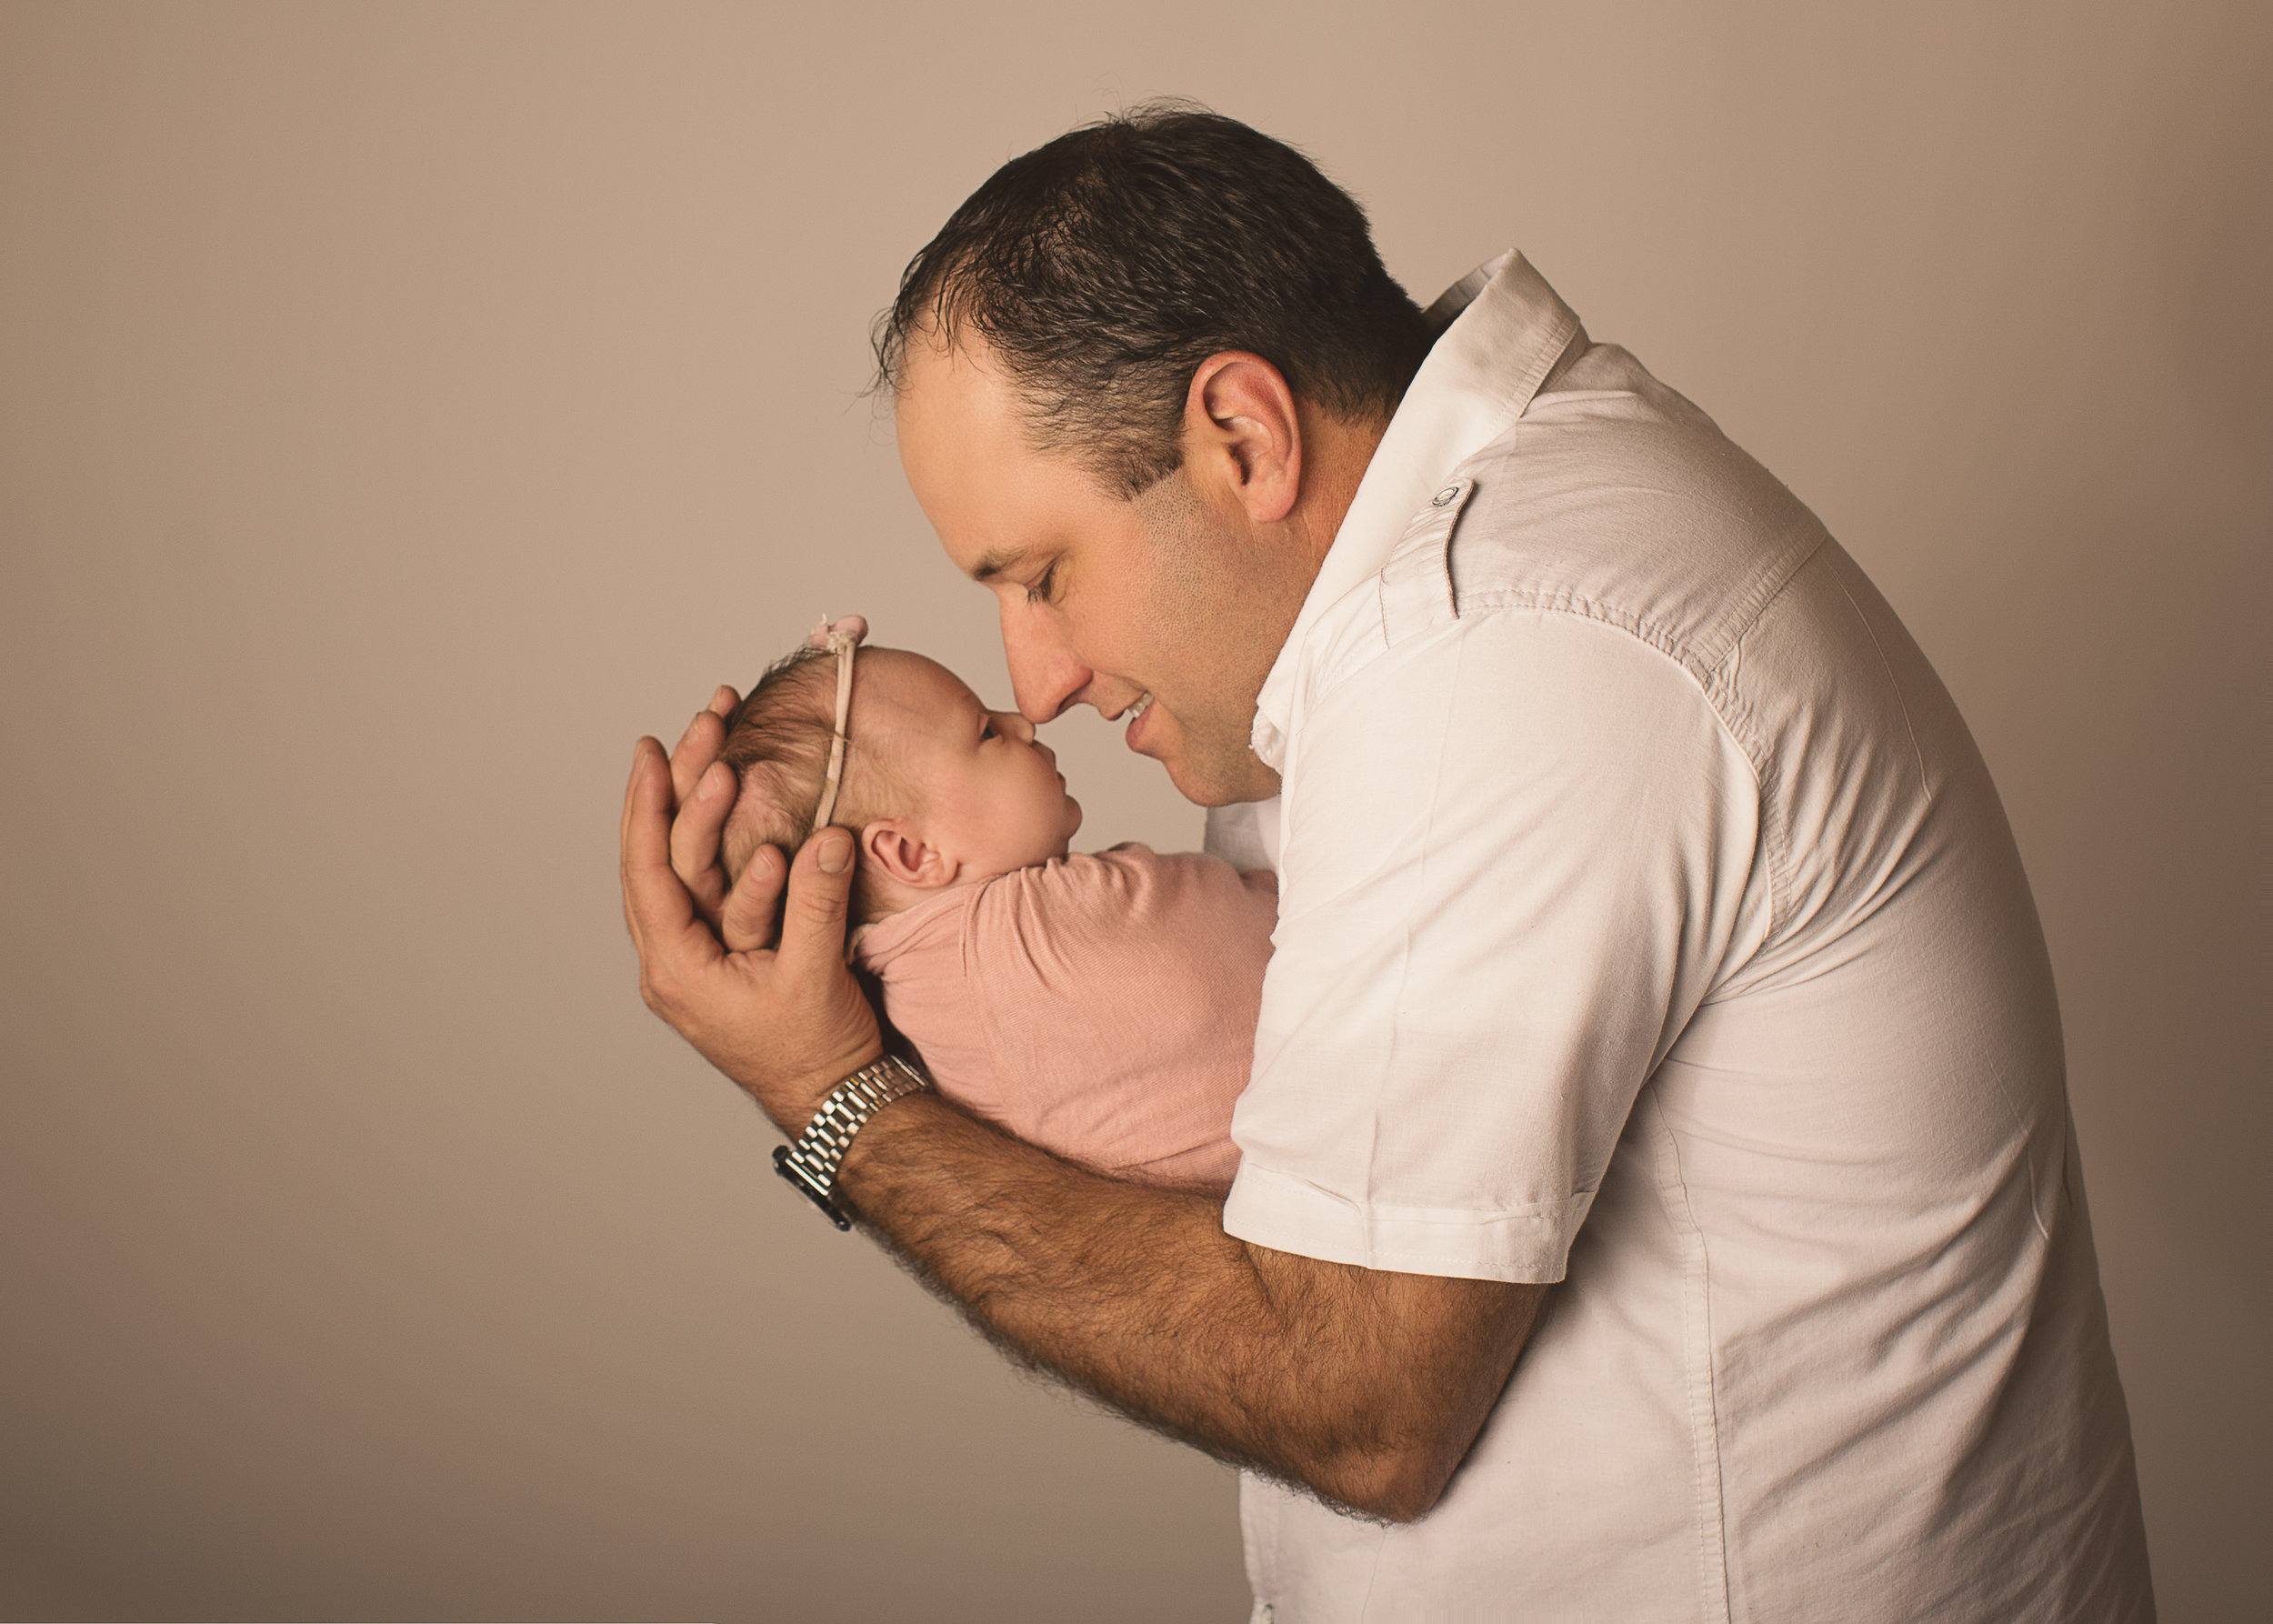 worcester_newborn_photographer_baby_girl_boston_ma_photos_2.jpg